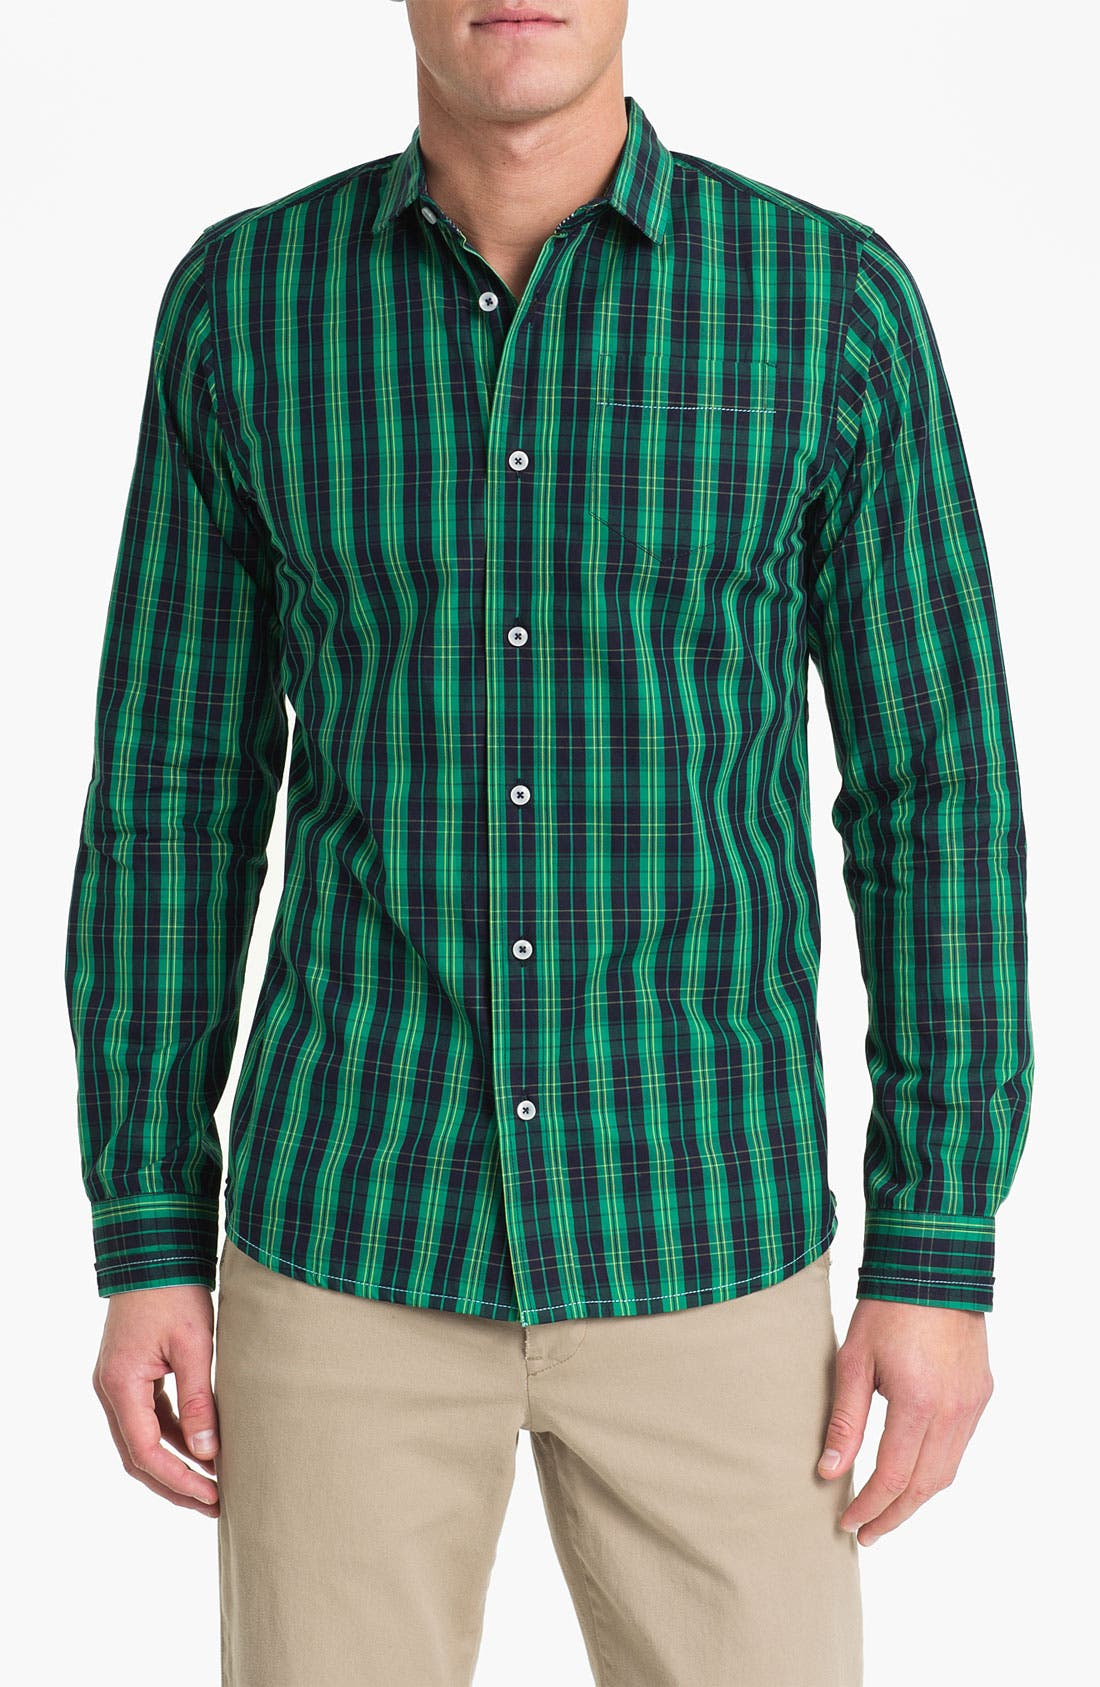 Main Image - Descendant of Thieves Tartan Plaid Woven Shirt